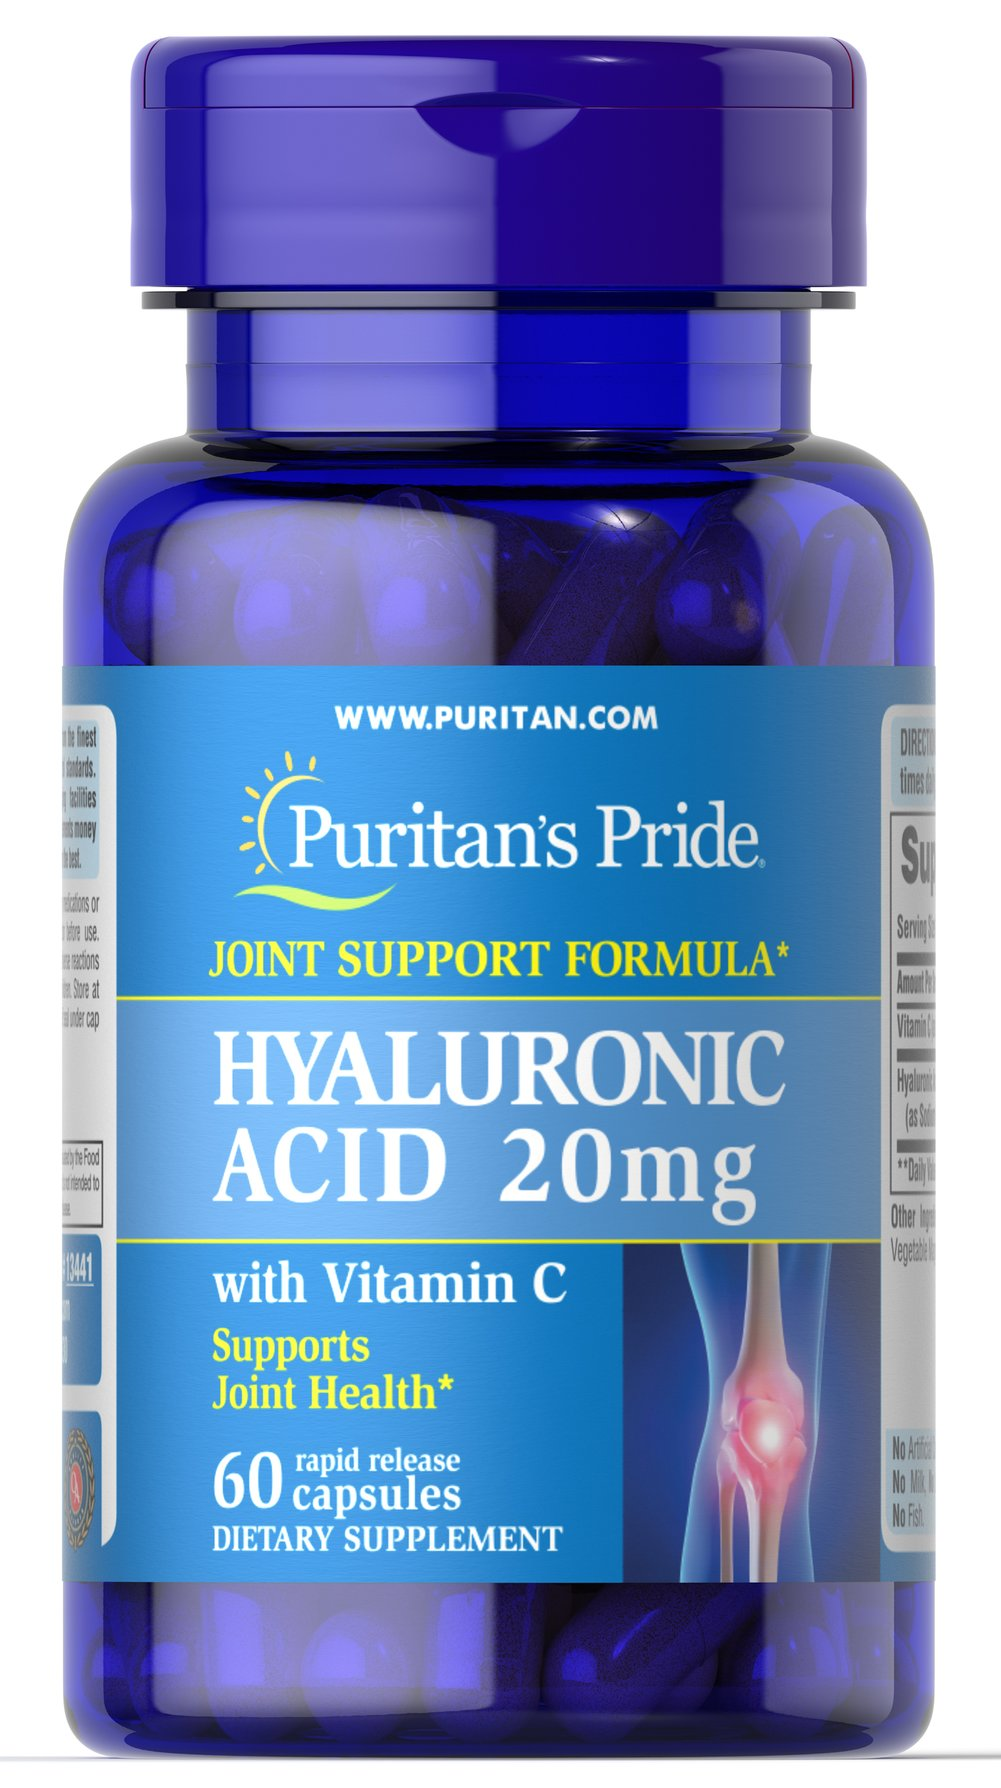 Hyaluronic Acid 20 mg <p>Helps lubricate joints**</p> <p>Hyaluronic Acid is a polysaccharide found in almost all adult connective tissue, including joints, ligaments, tendons and skin.** Just one Hyaluronic Acid capsule a day can help maintain the fluid between your joints, providing the cushioning and lubrication necessary for easy movement.**</p> 60 Capsules 20 mg $11.99